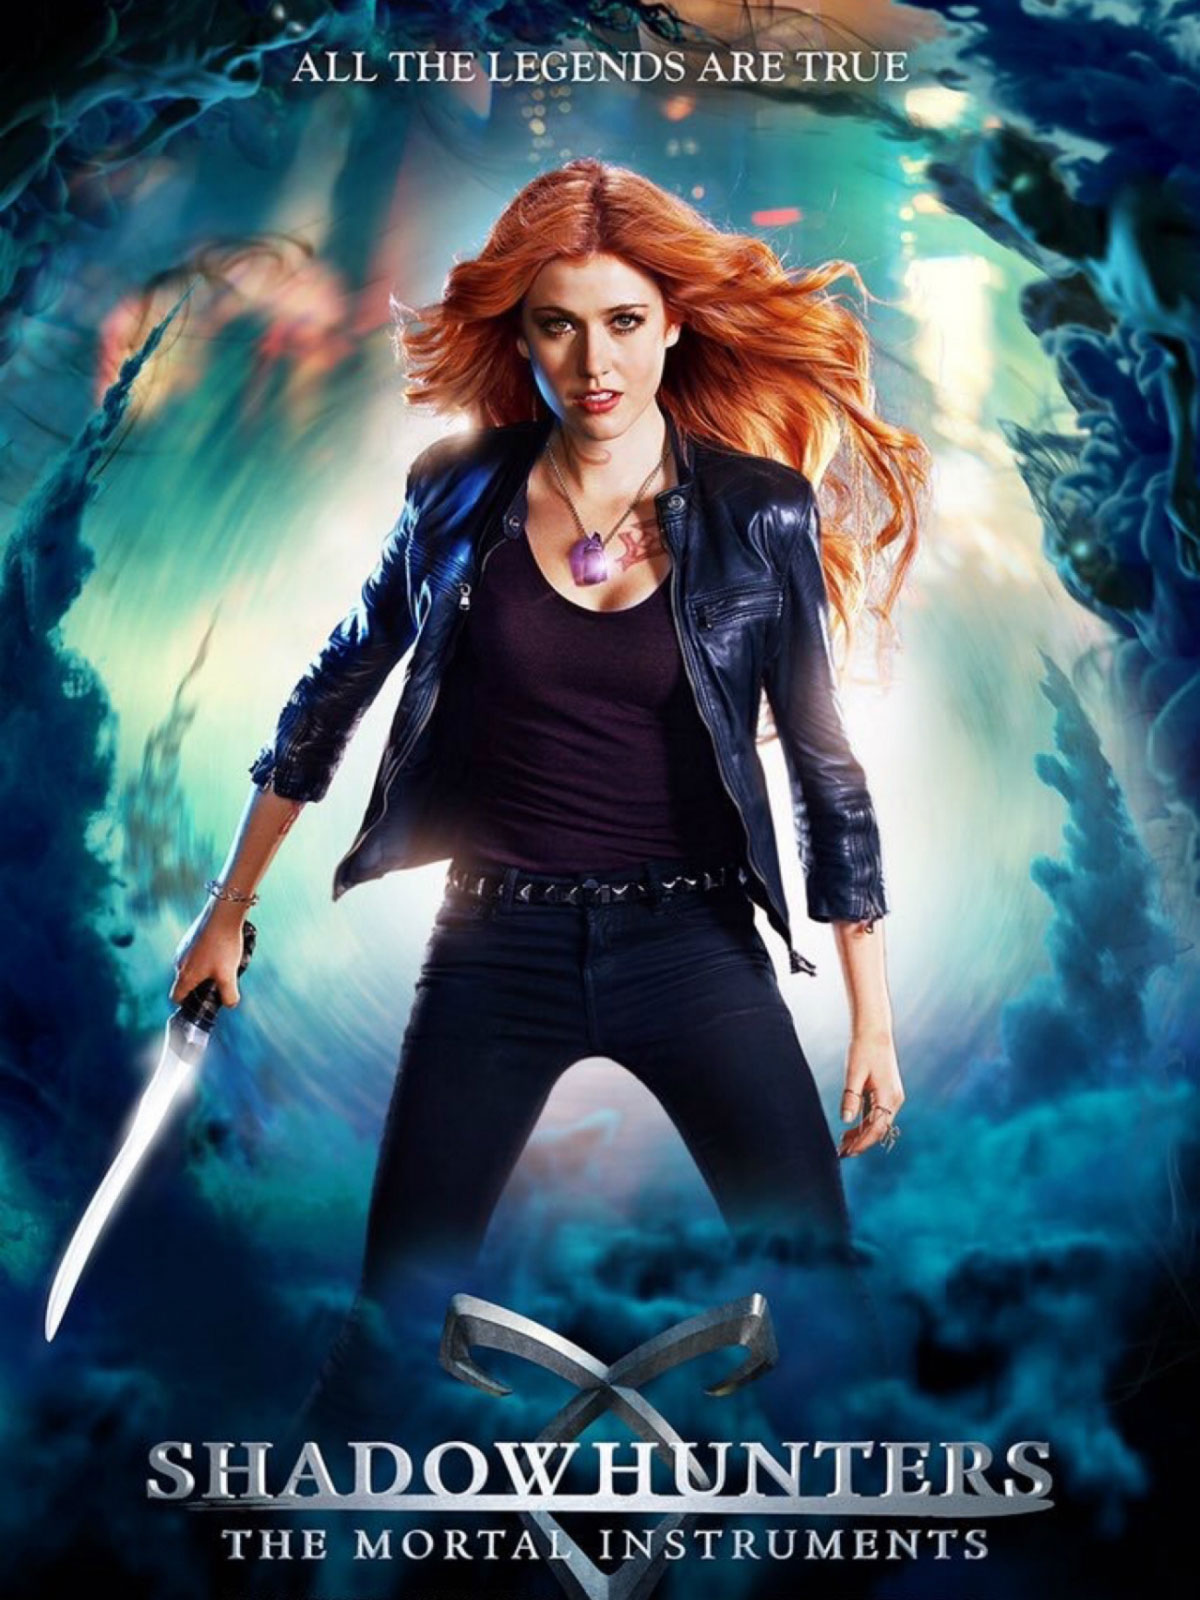 Shadowhunters Saison 2 Episode 3 Vostfr